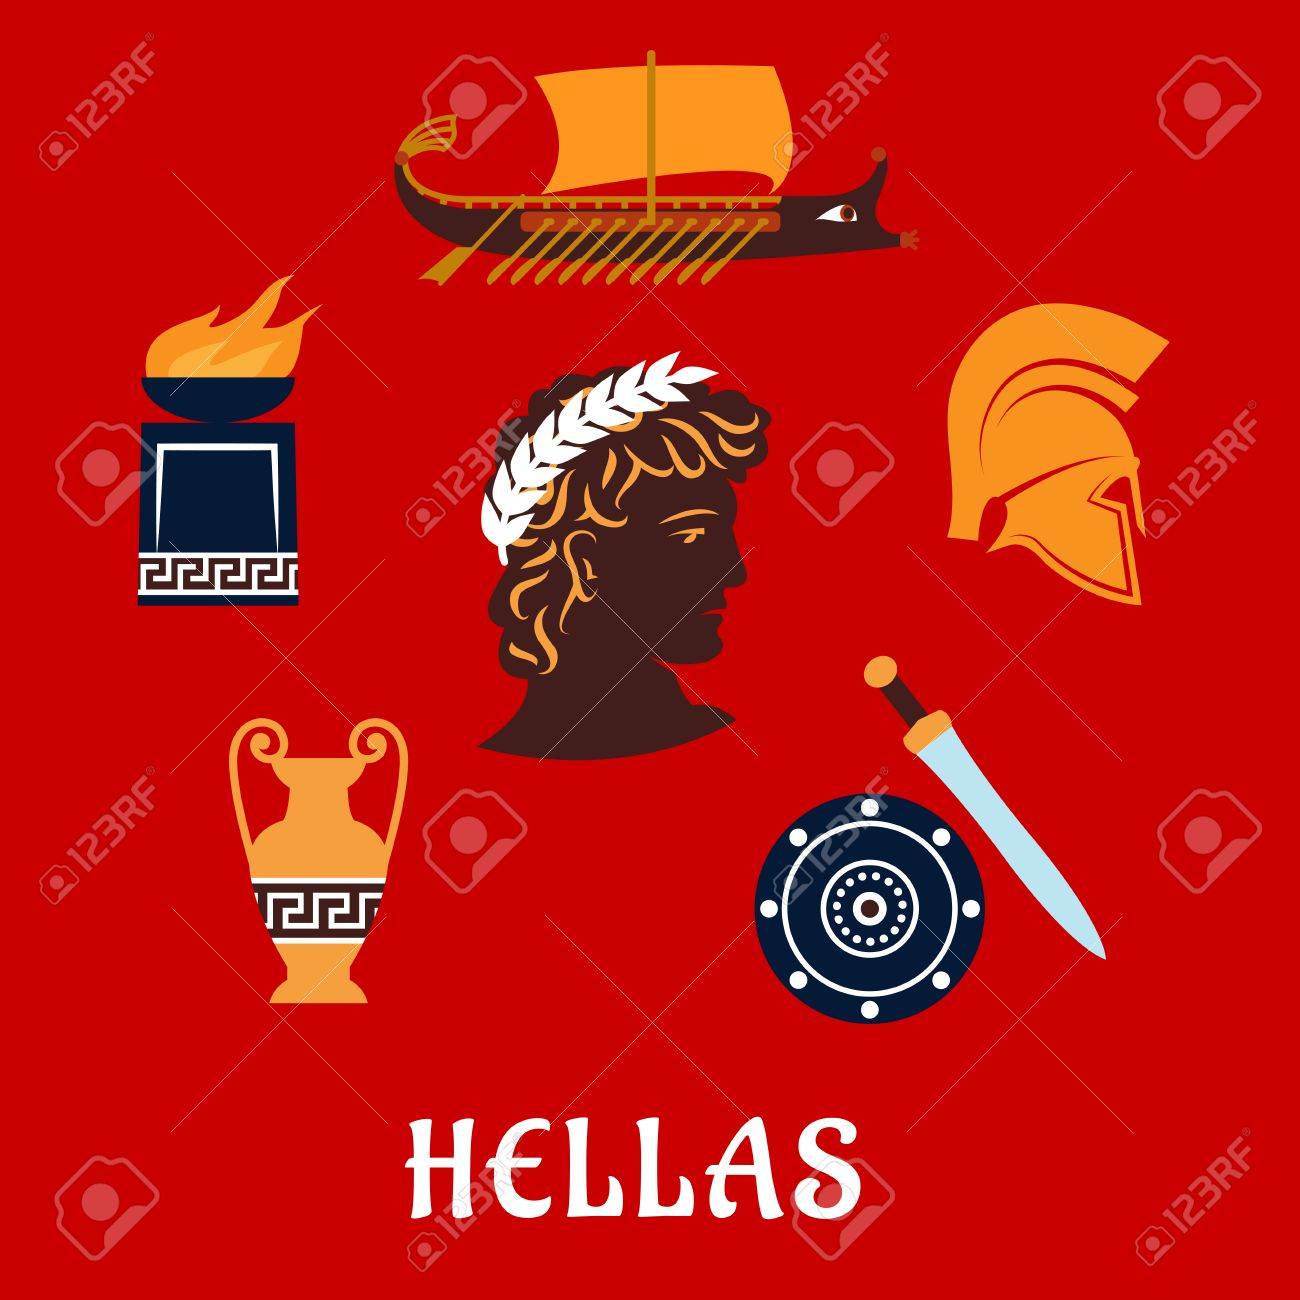 Ancient greece flat concept depicting greek hero profile in laurel ancient greece flat concept depicting greek hero profile in laurel wreath surrounded by greek symbols biocorpaavc Image collections